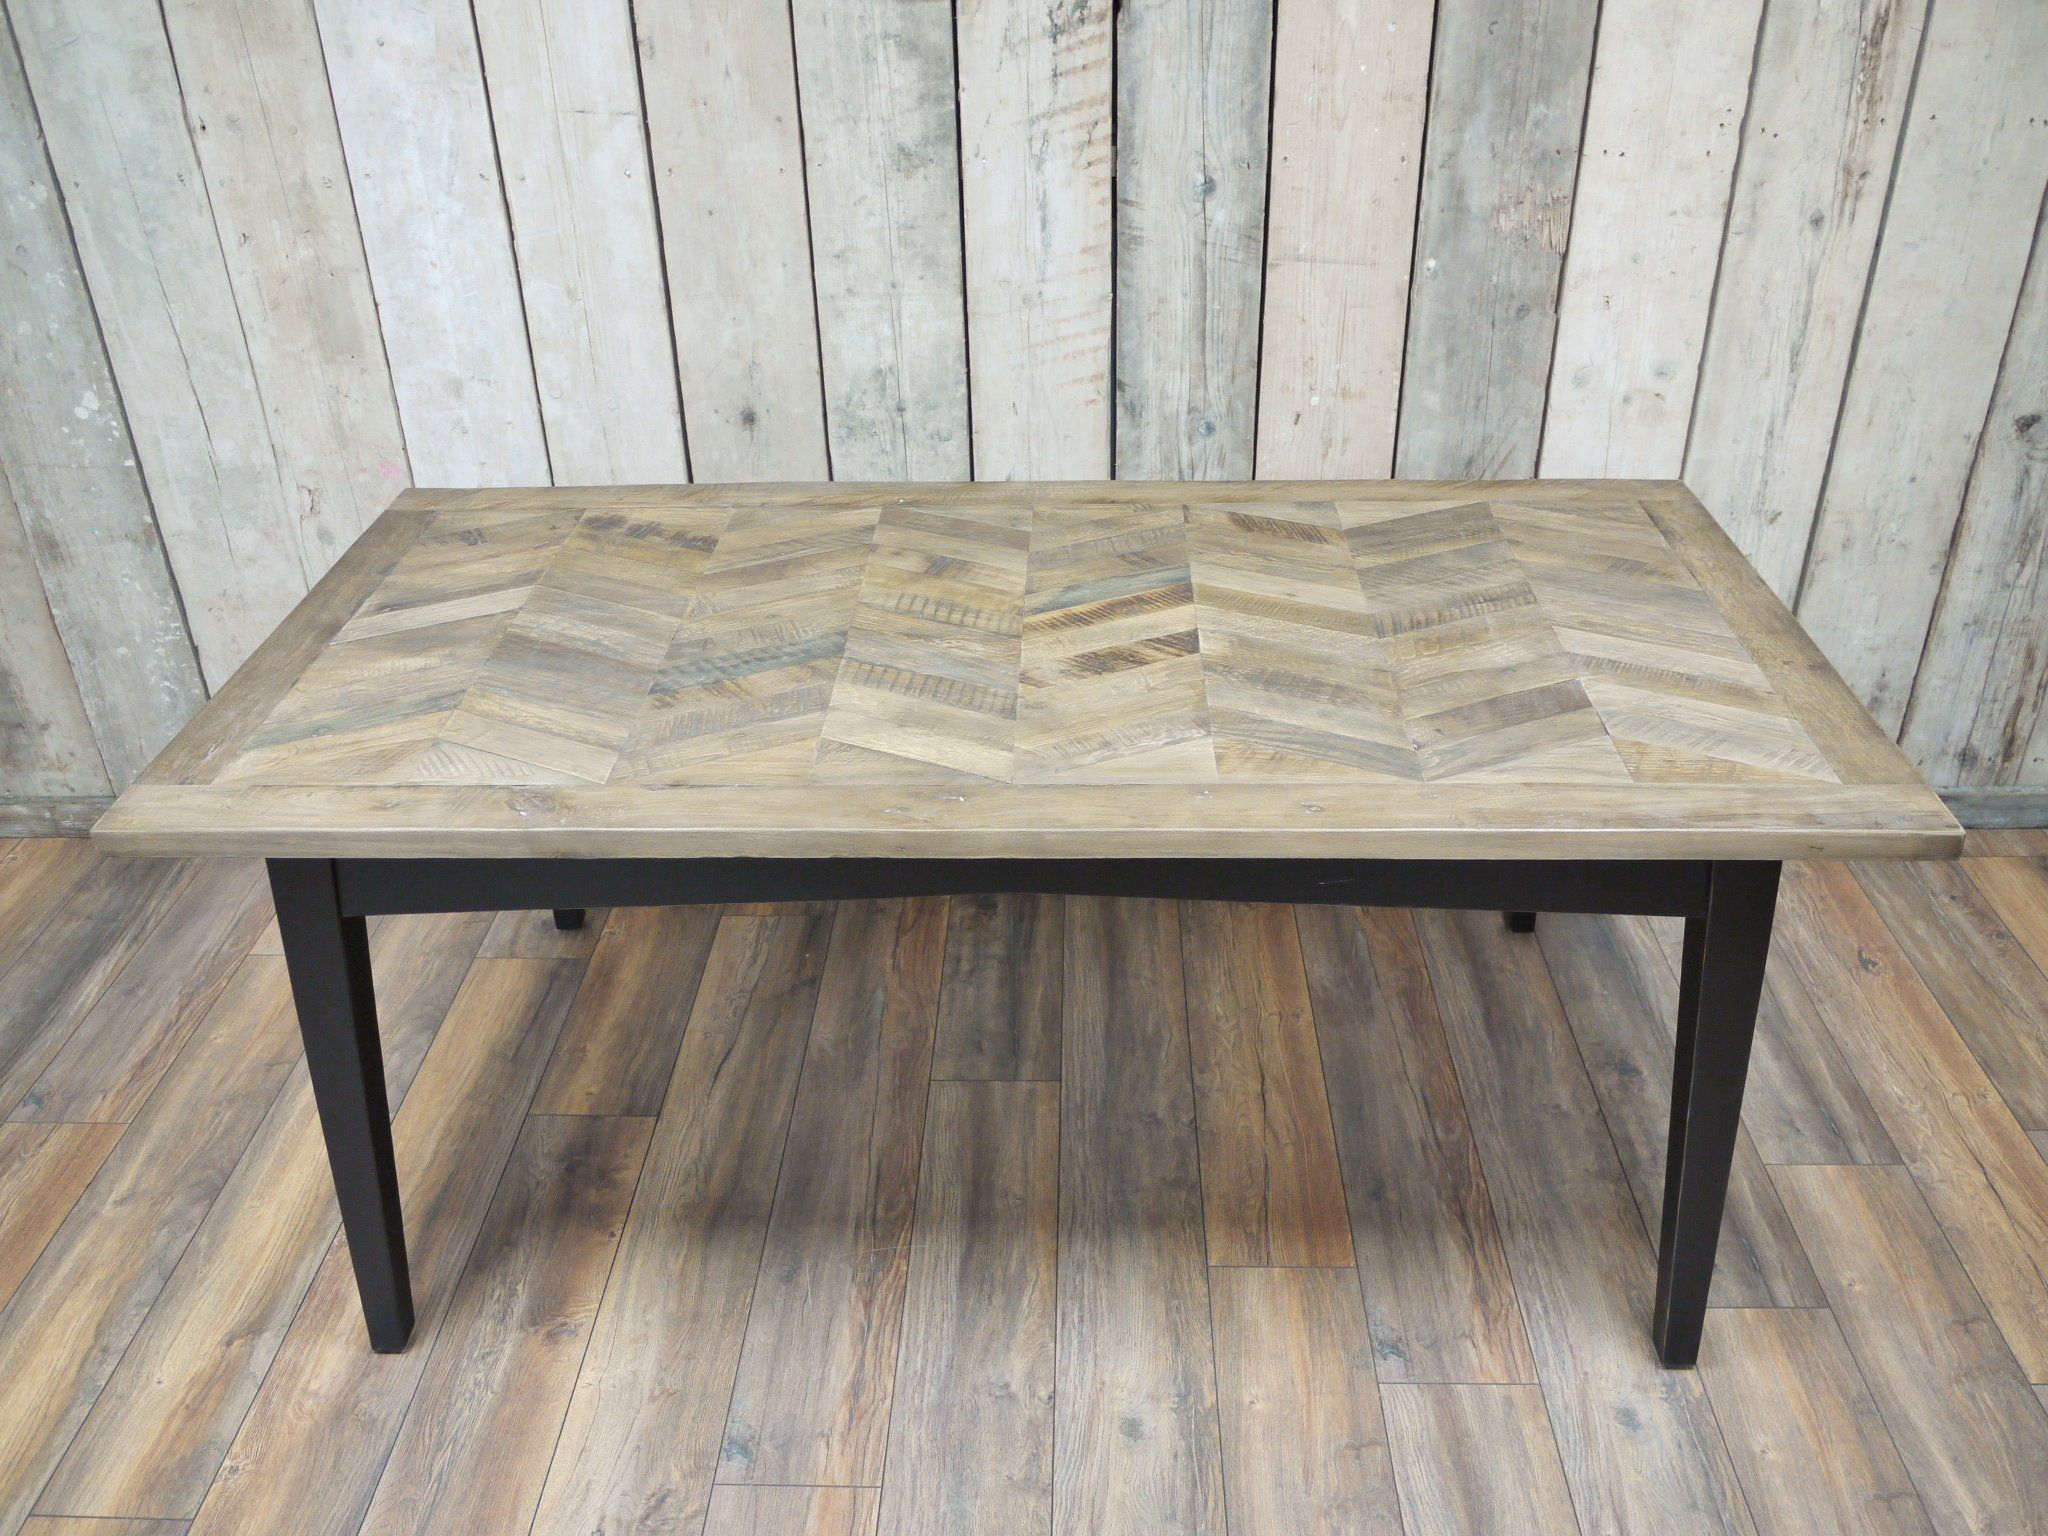 Herringbone Recycled Birch Wood Dining Table 180 X 90